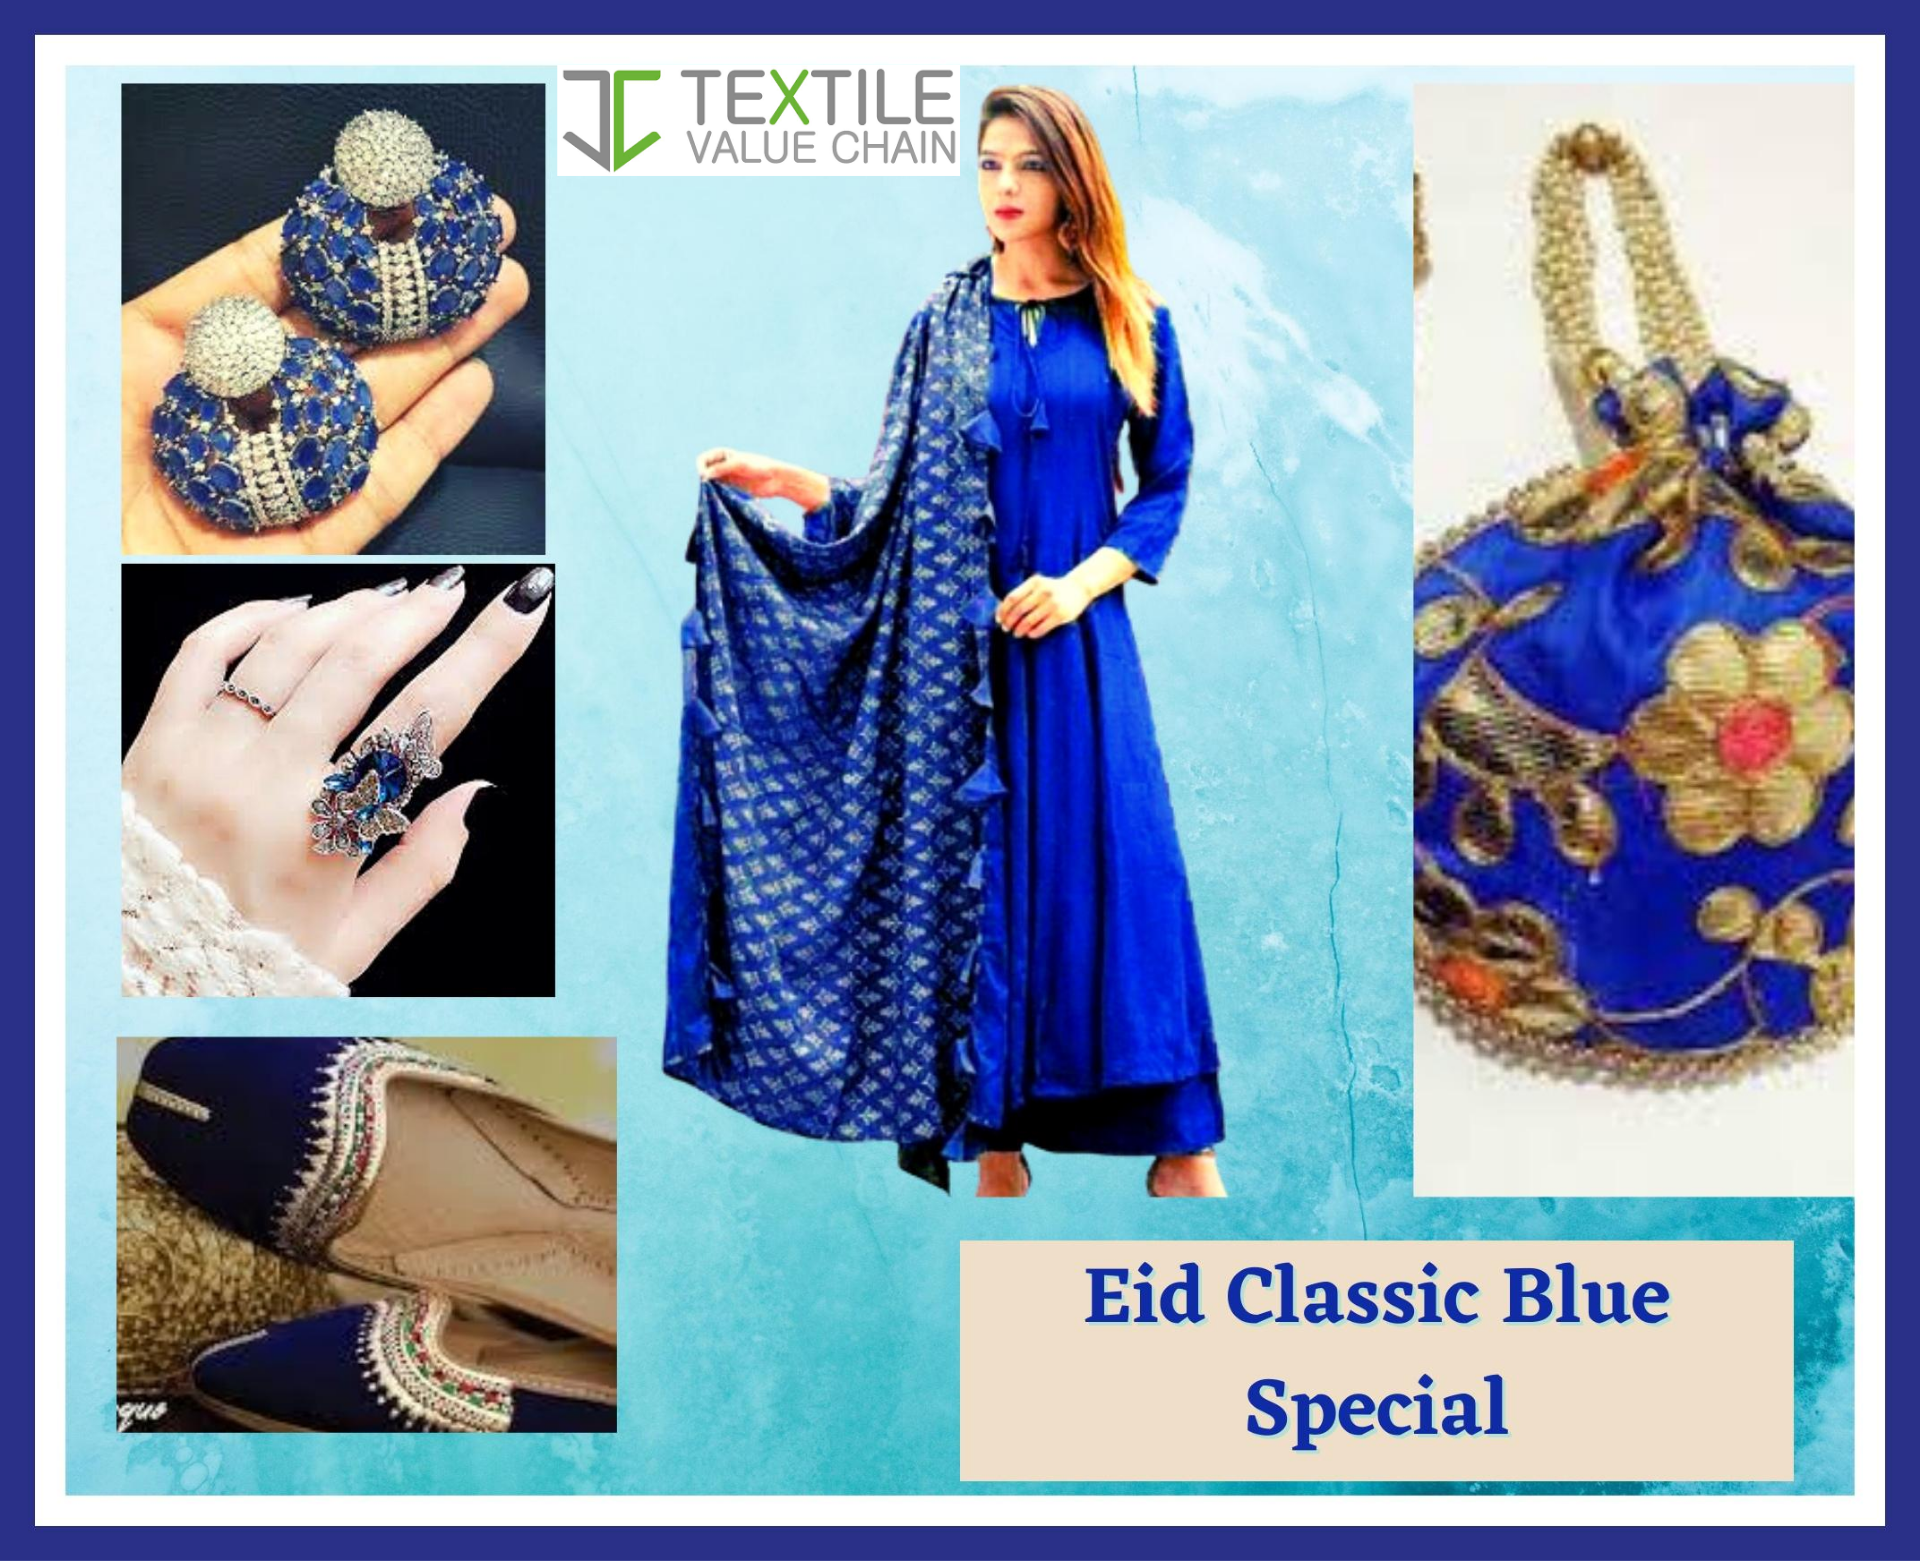 Eid Classic Blue Special